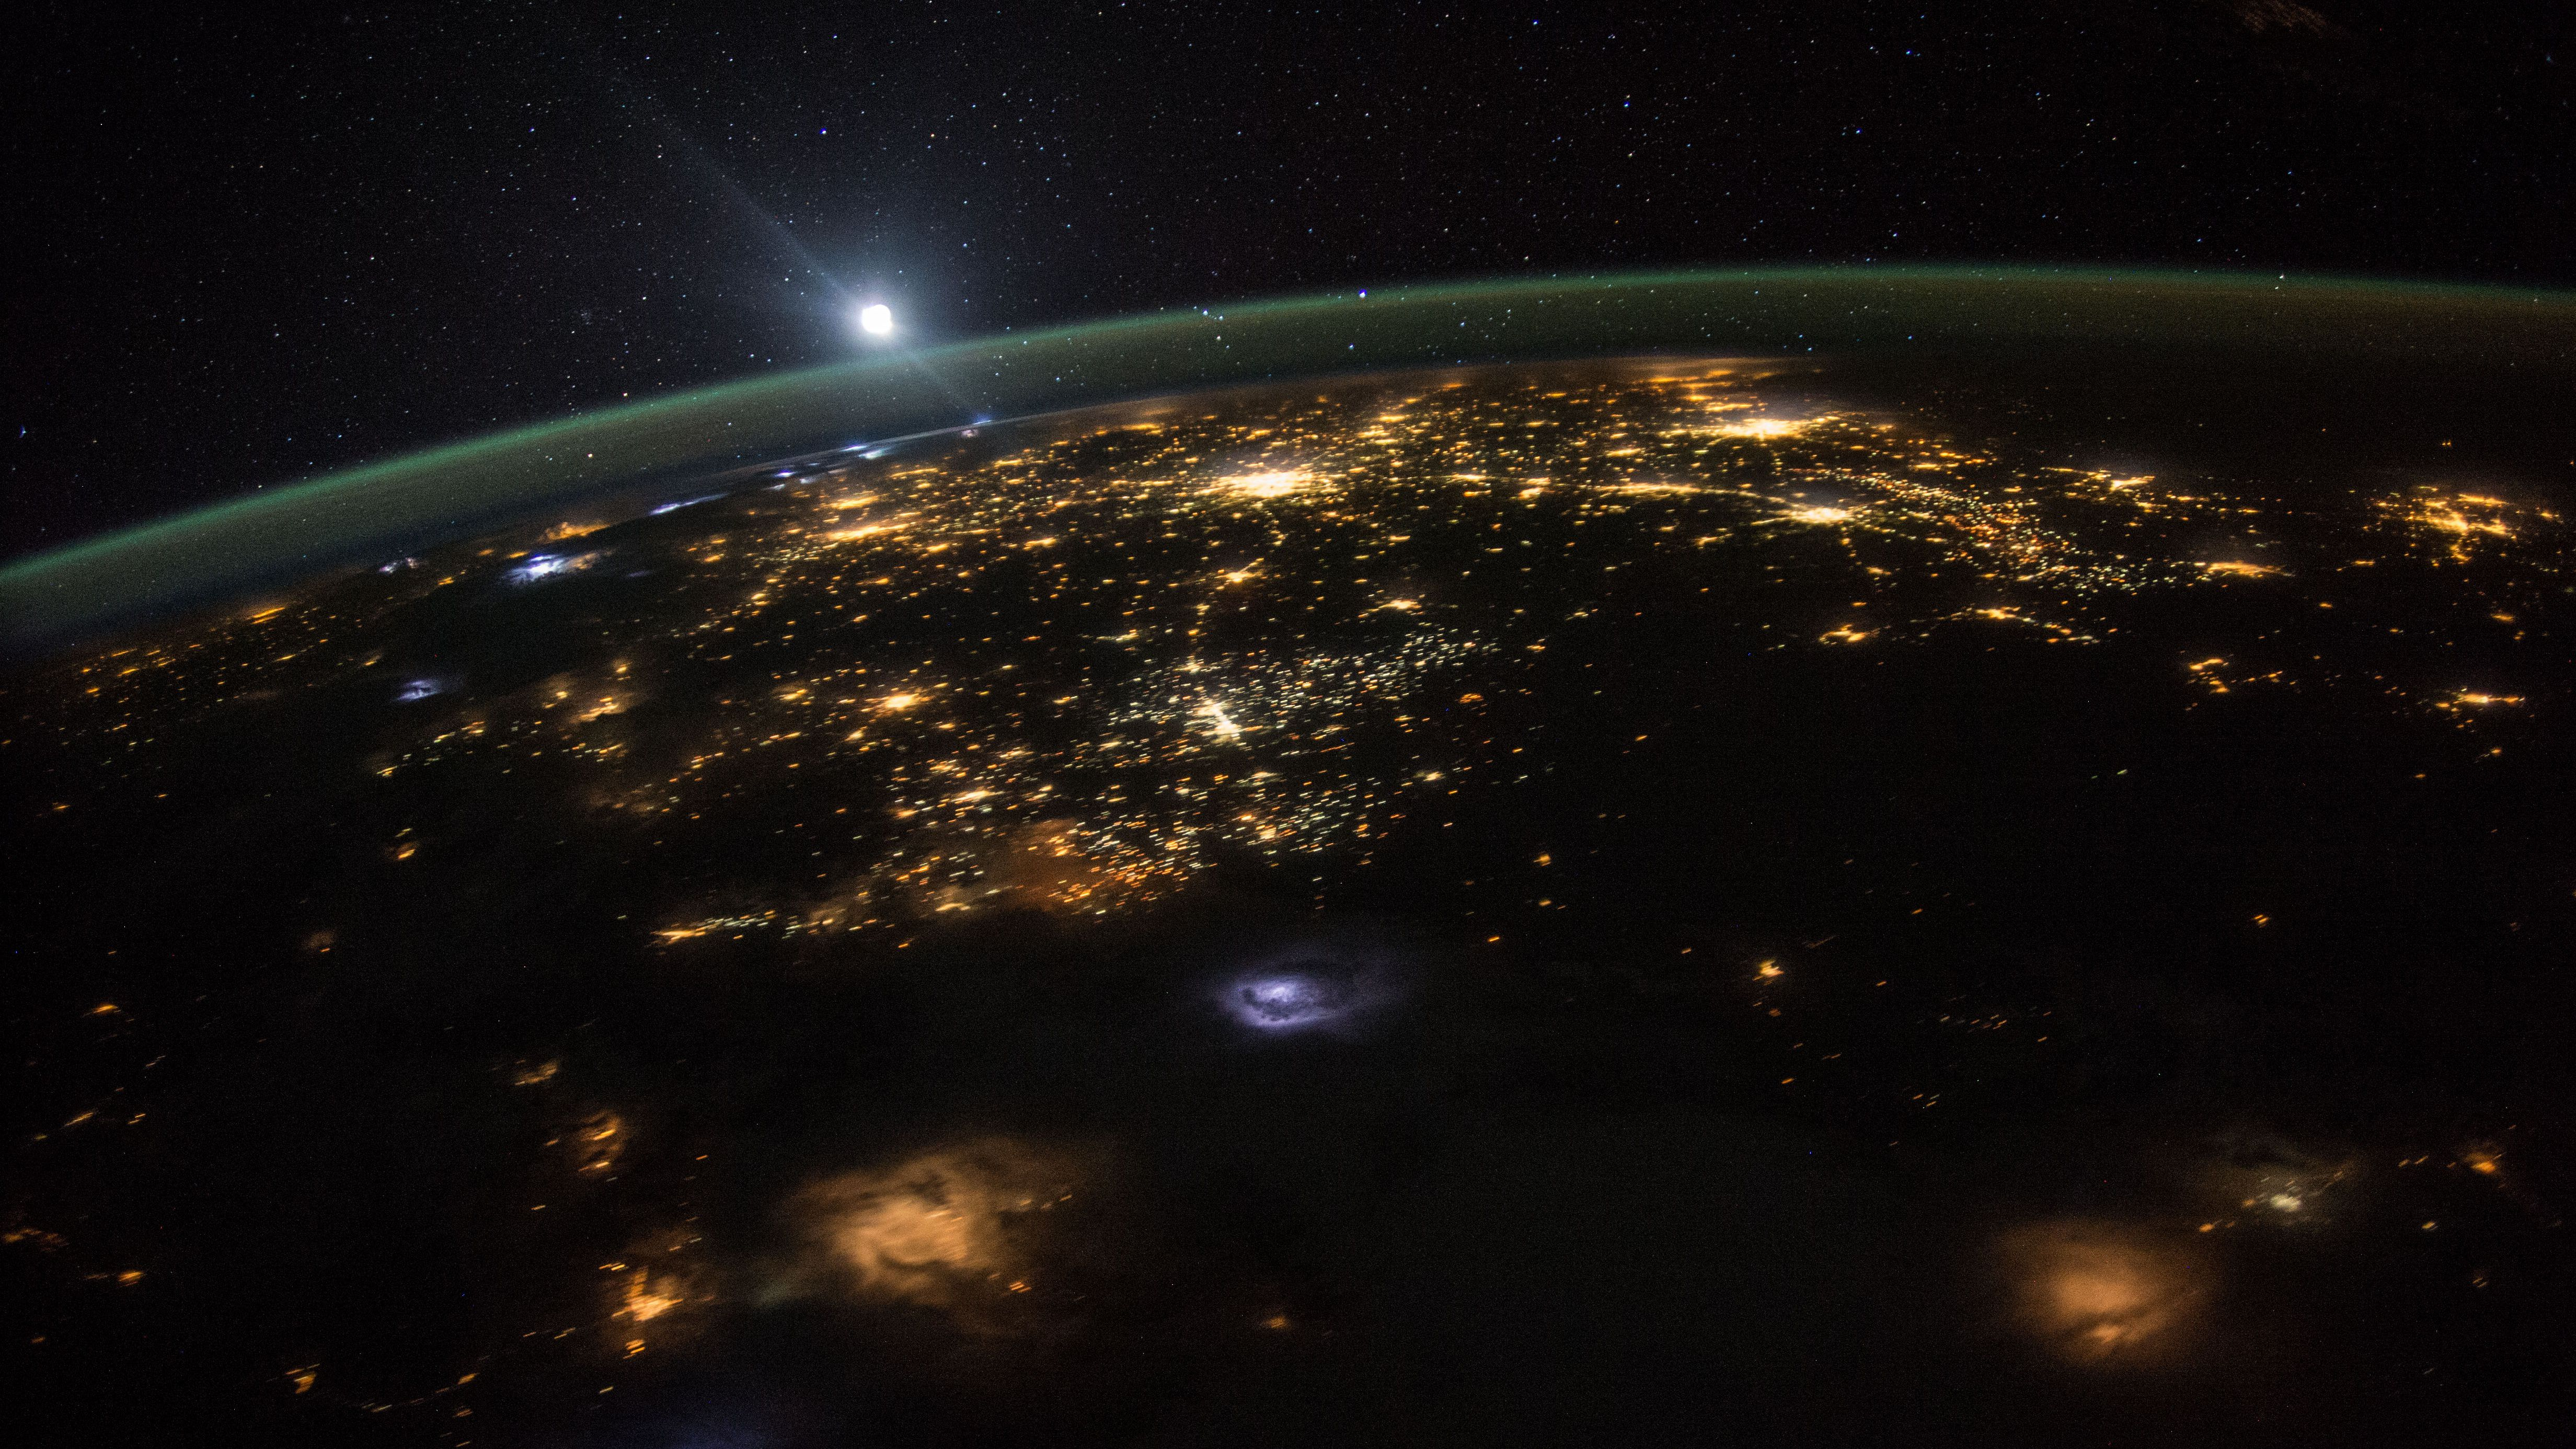 Astronauts talk about seeing earth from space: View of Earth from the ISS: Sun rising over earth.